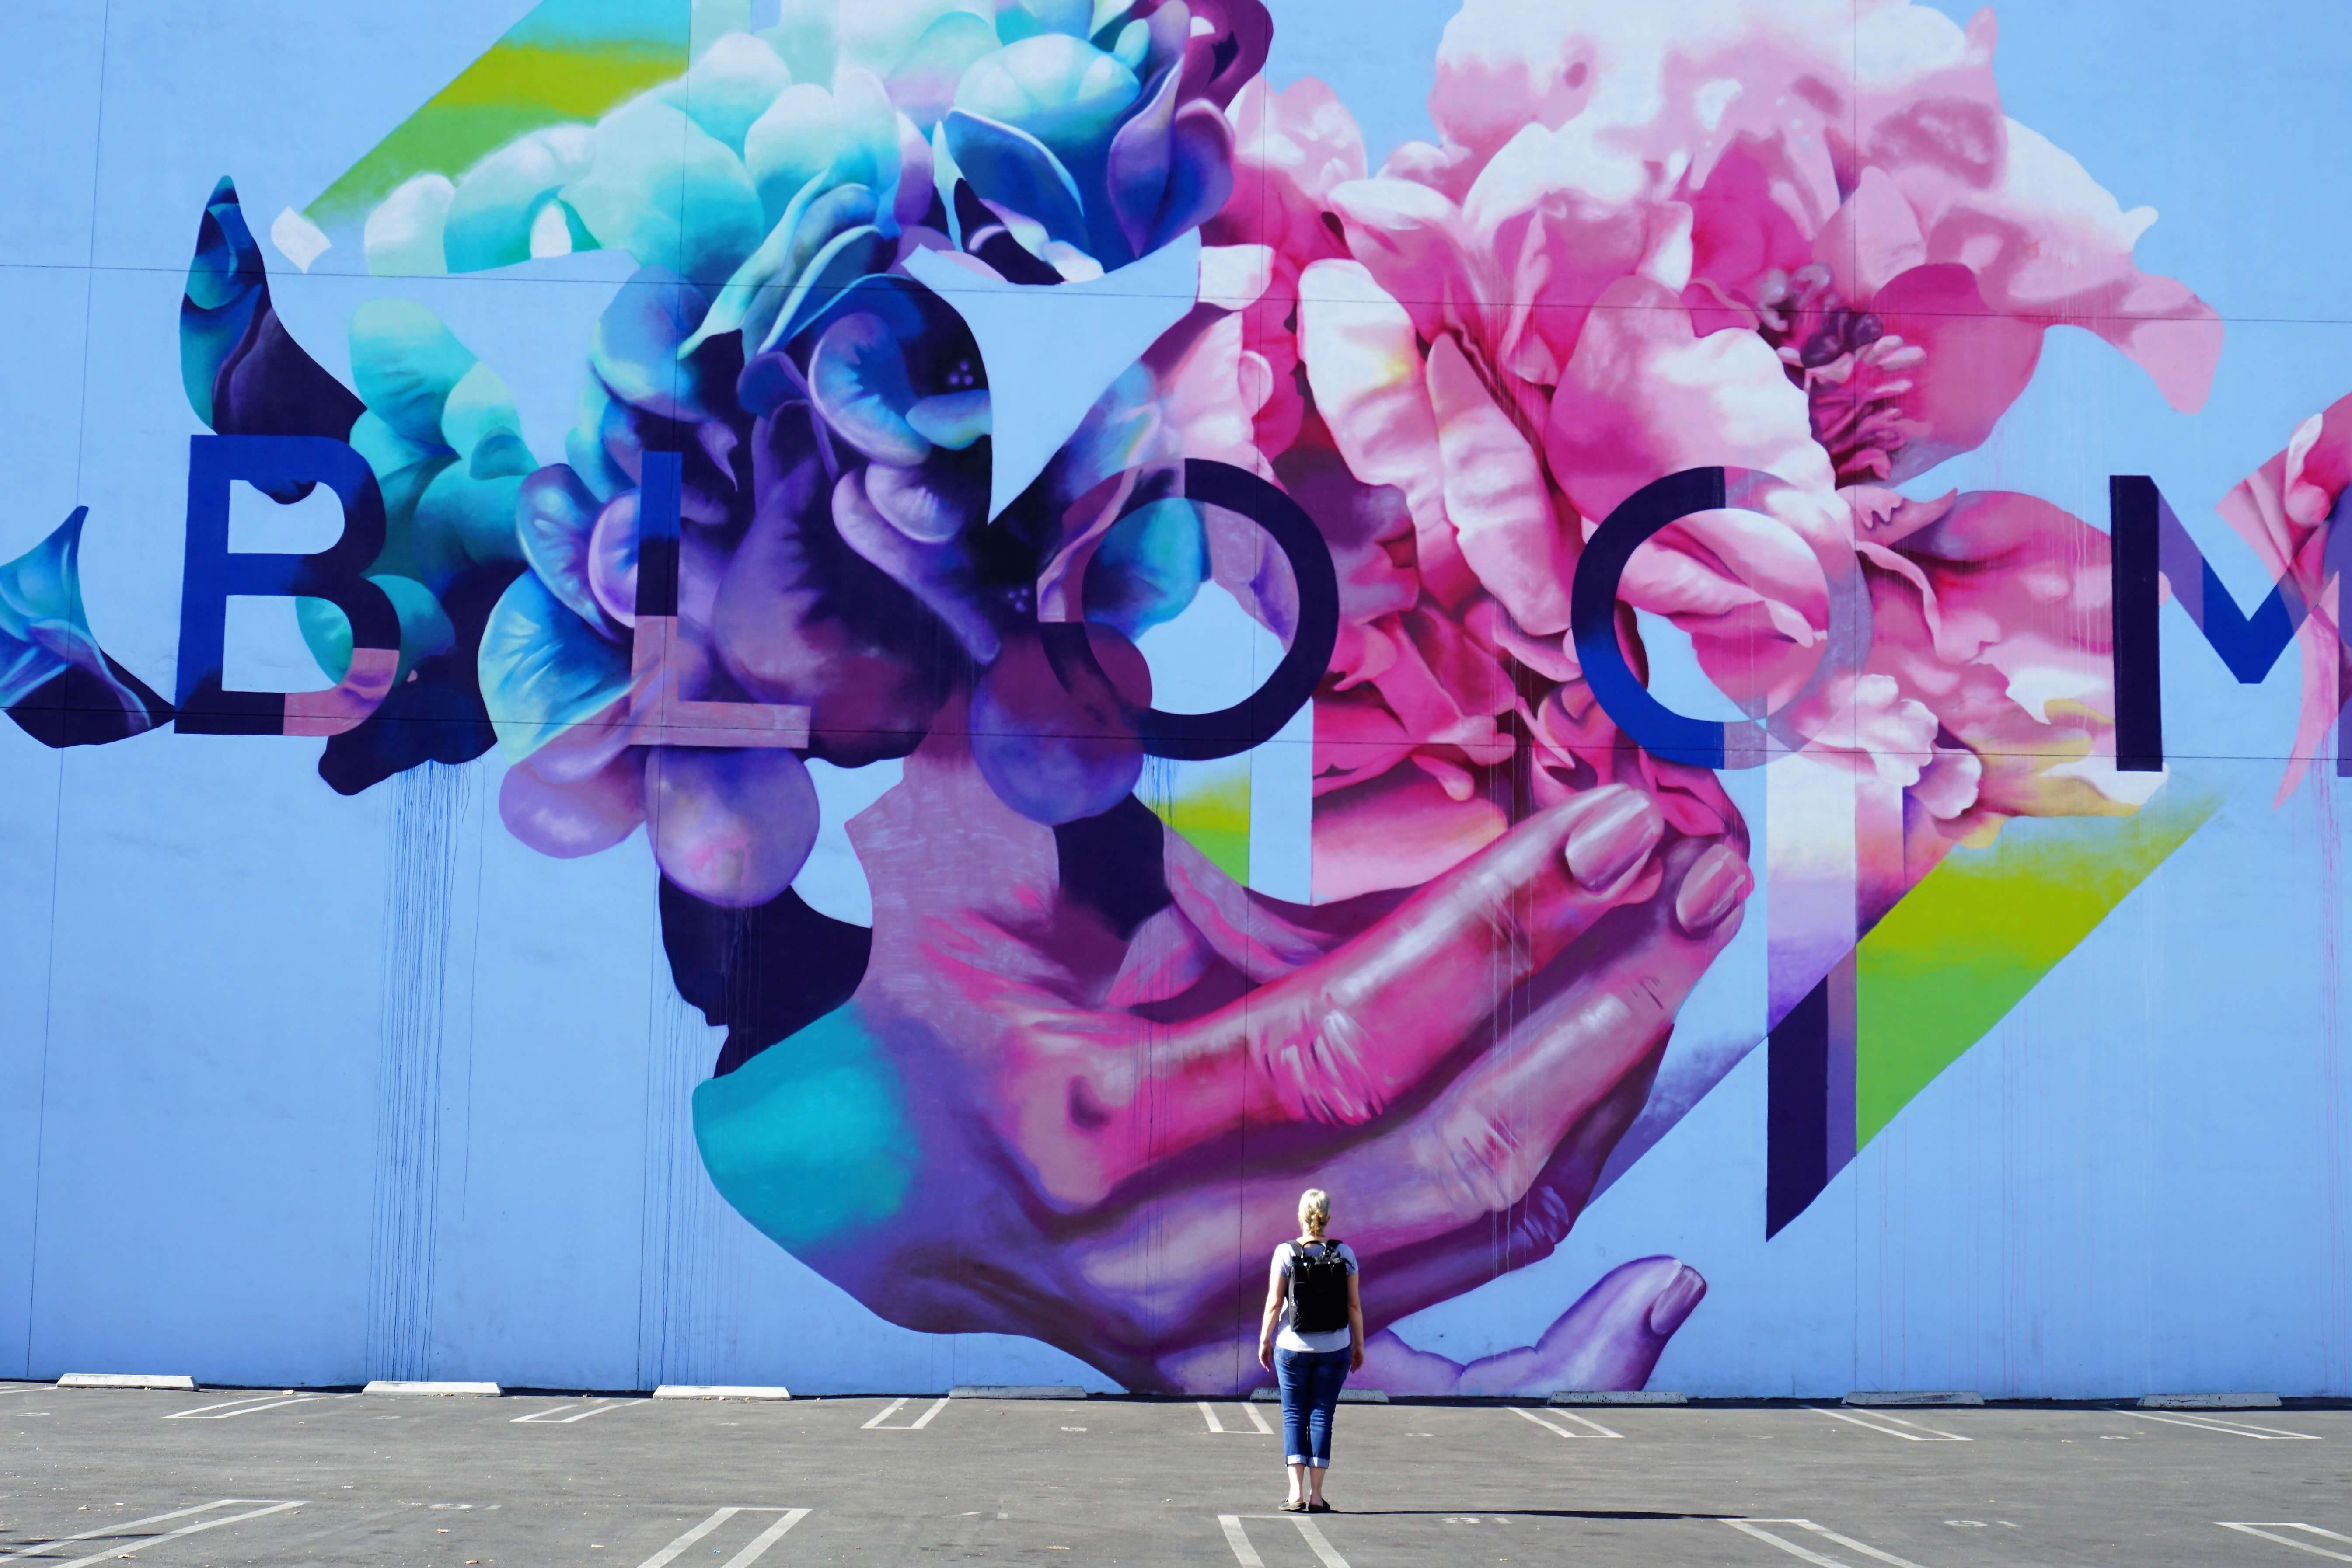 Wendy standing in front of the famous street mural, Bloom